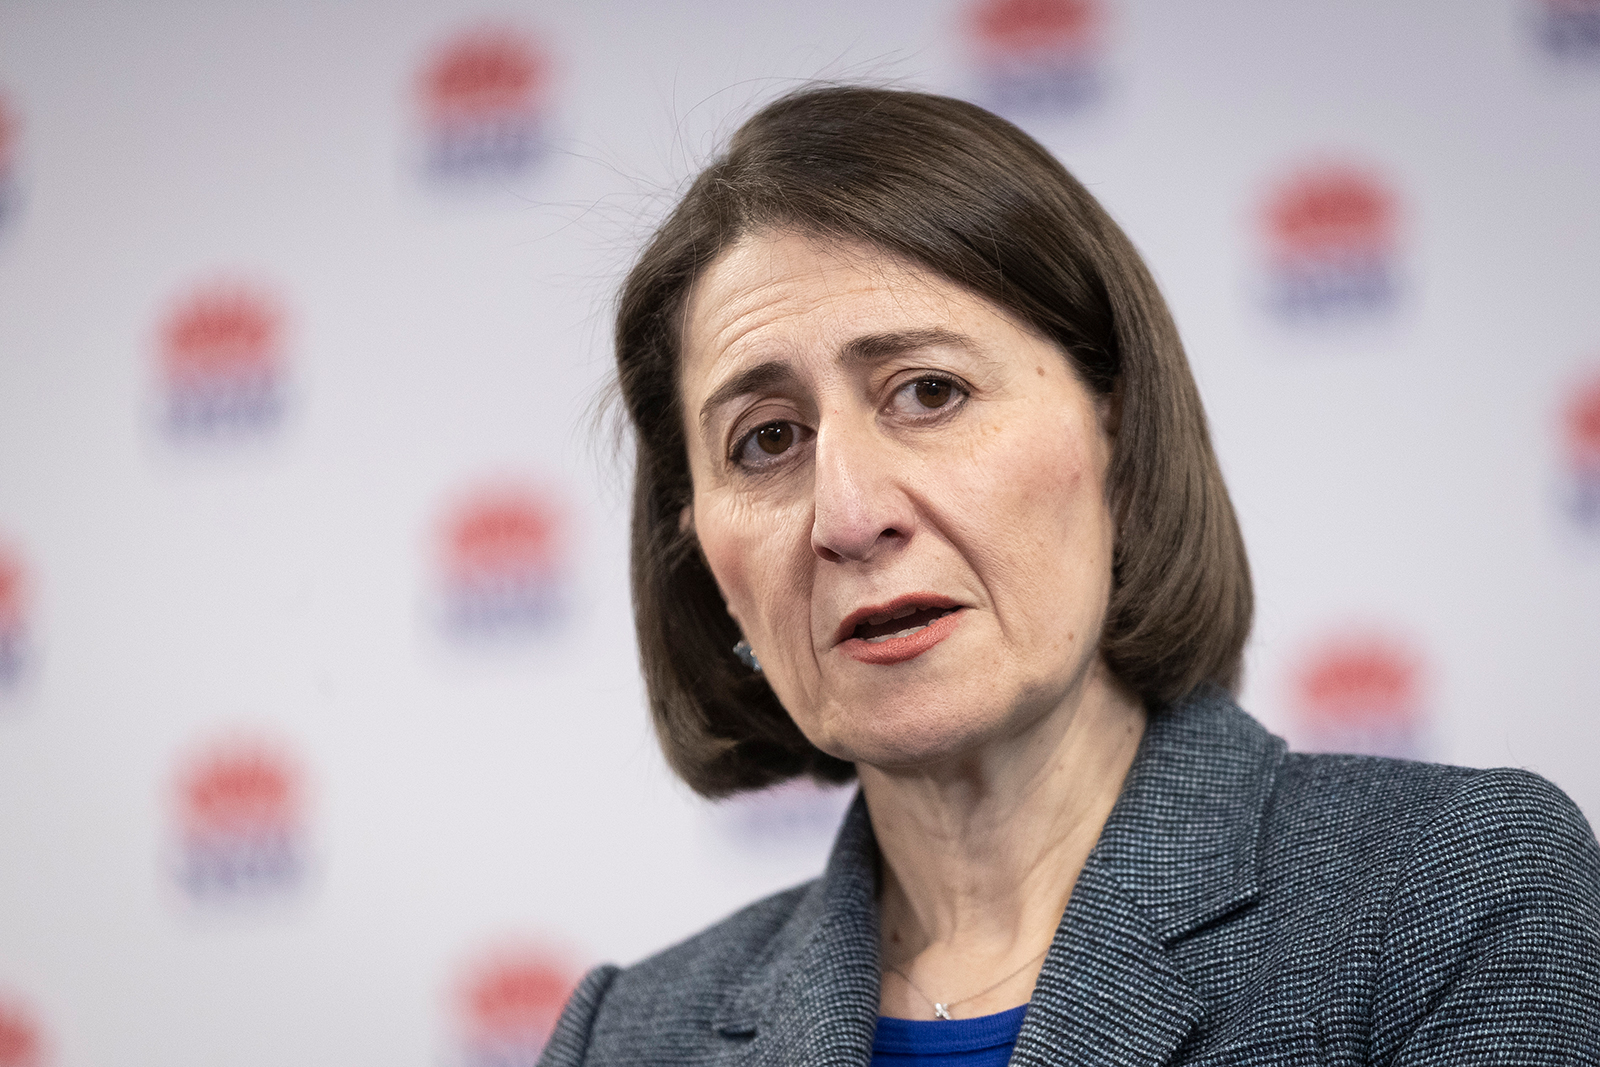 New South Wales Premier Gladys Berejiklian speaks at a news conference in Sydney, Australia, on August 17.